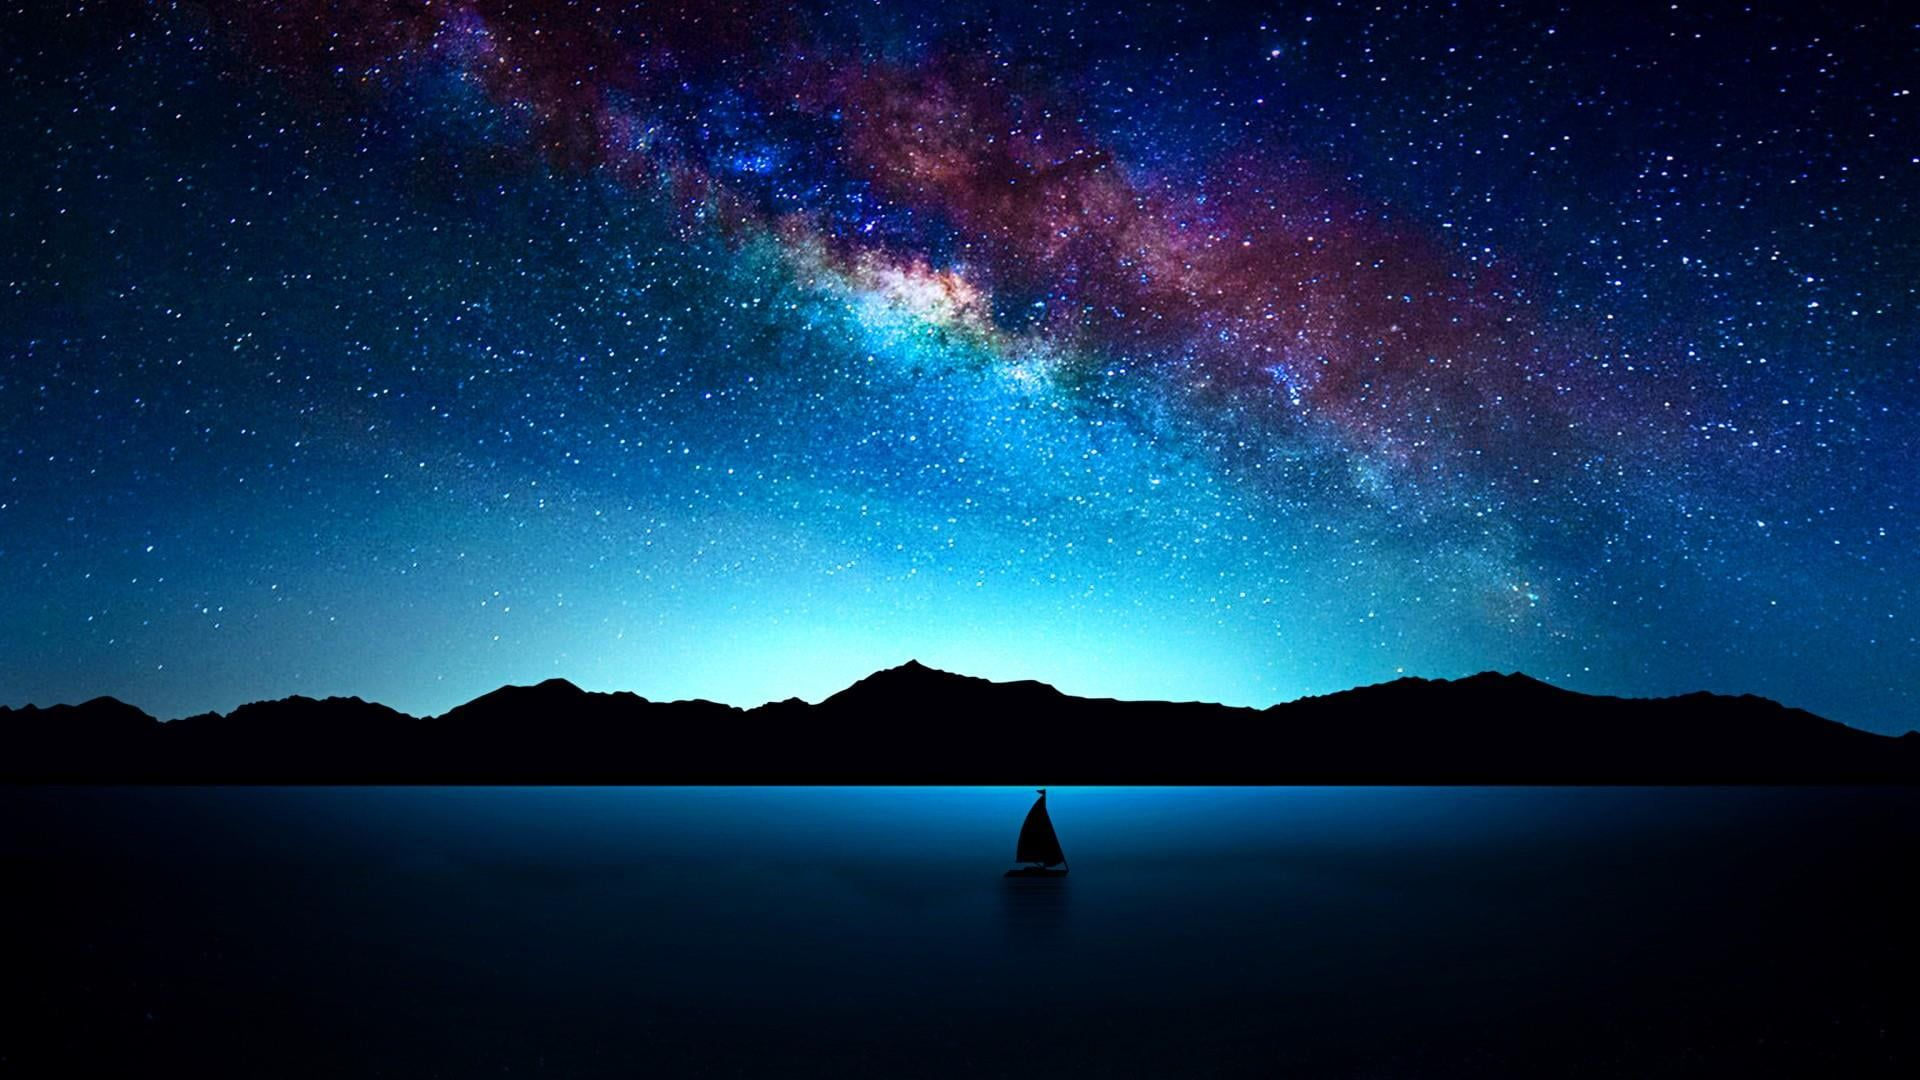 Silhouette Of Boat Illustration Night Starry Stars Milky Way Sky Night Sky Nature 1080p Wallpaper Hdw Milky Way Photography Milky Way Boat Illustration